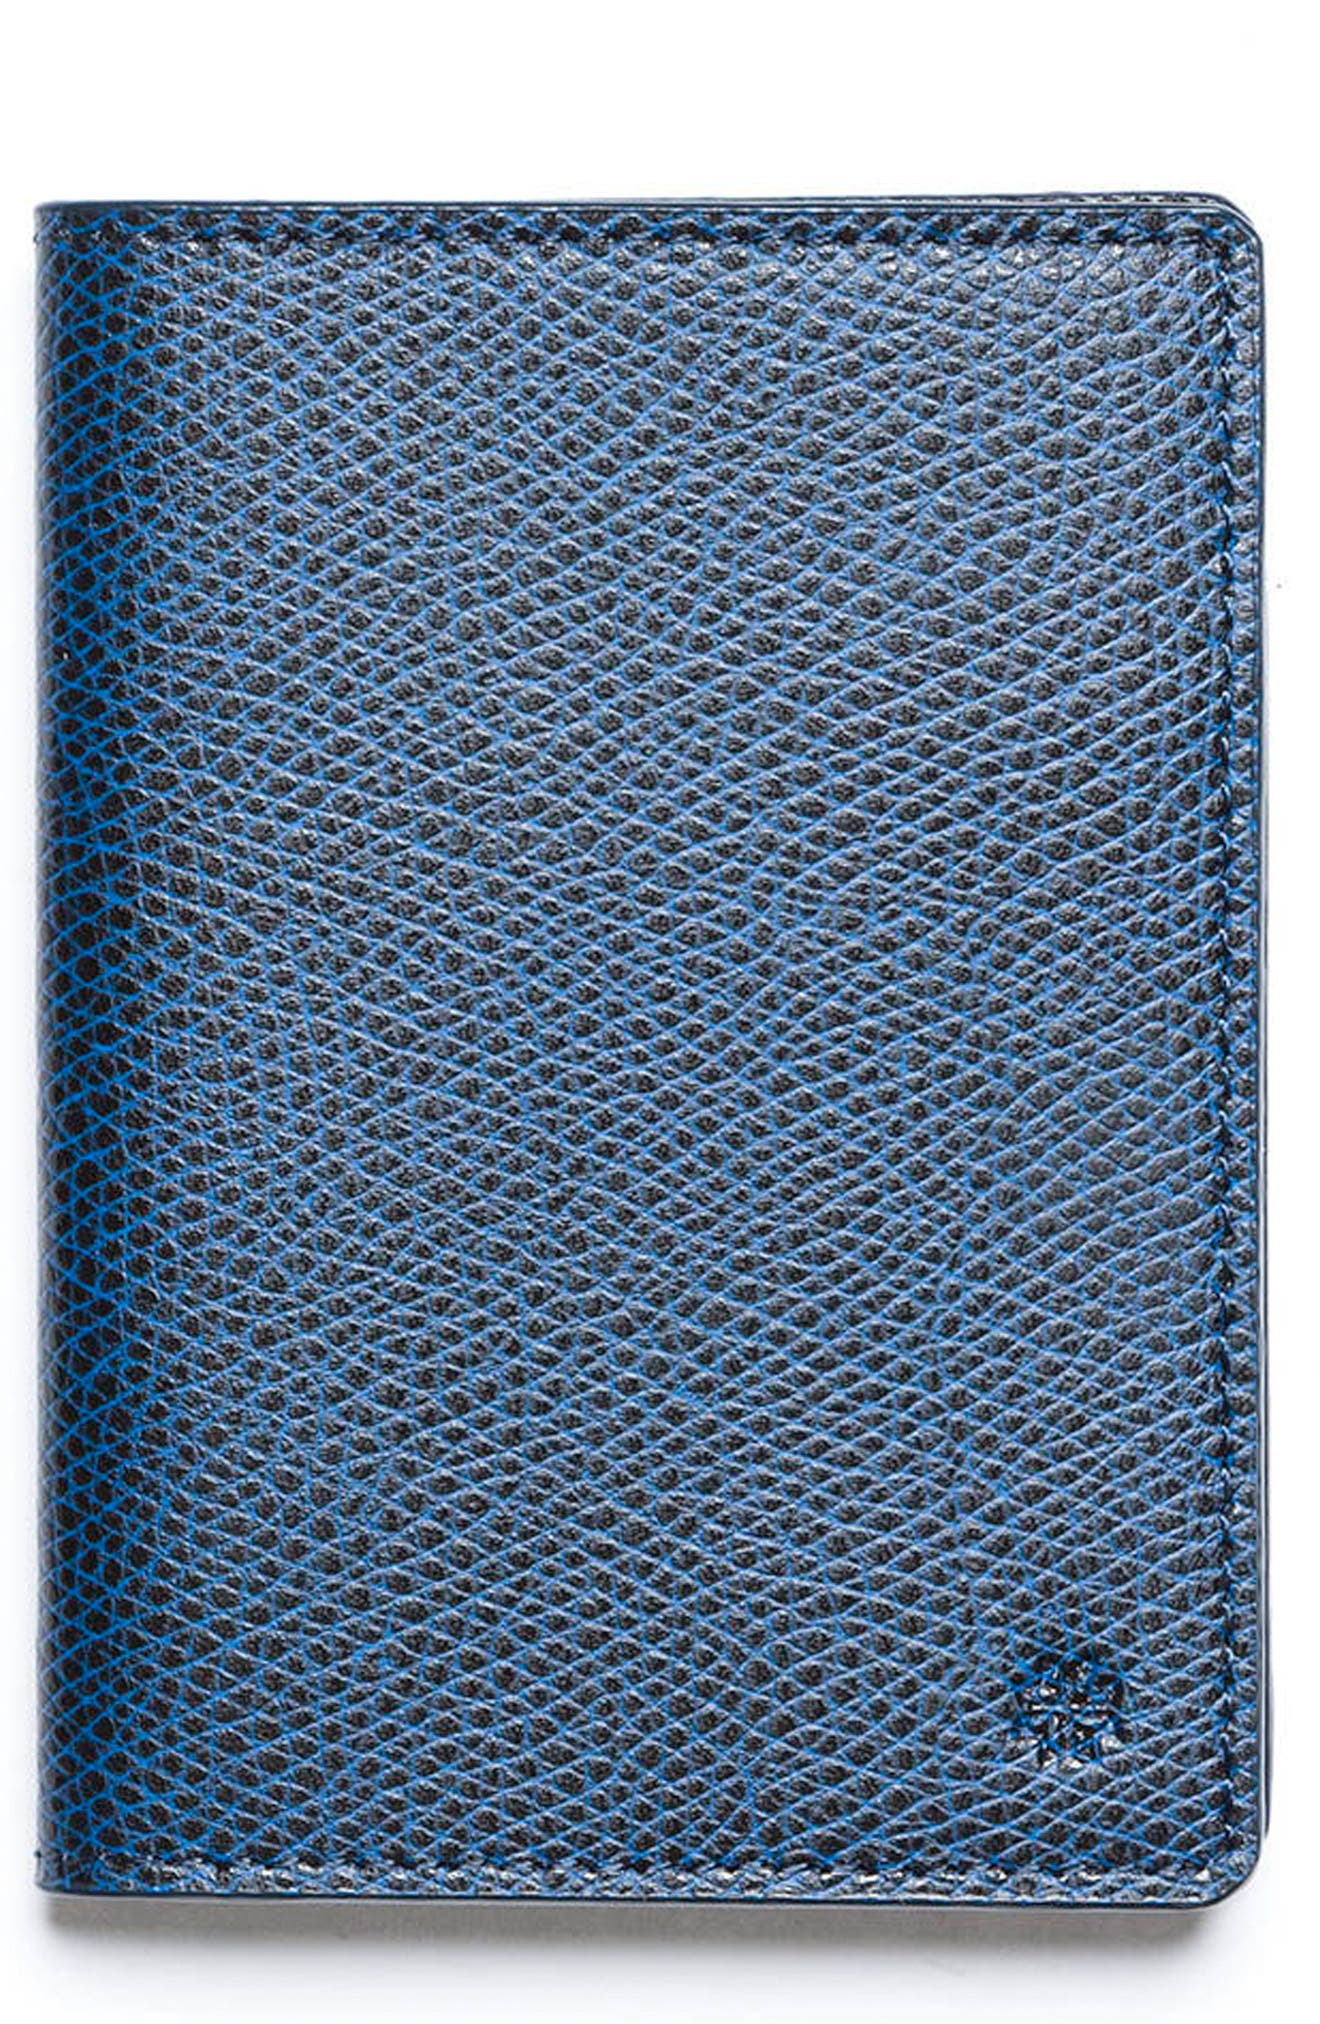 Vertical Leather Wallet,                         Main,                         color, Navy